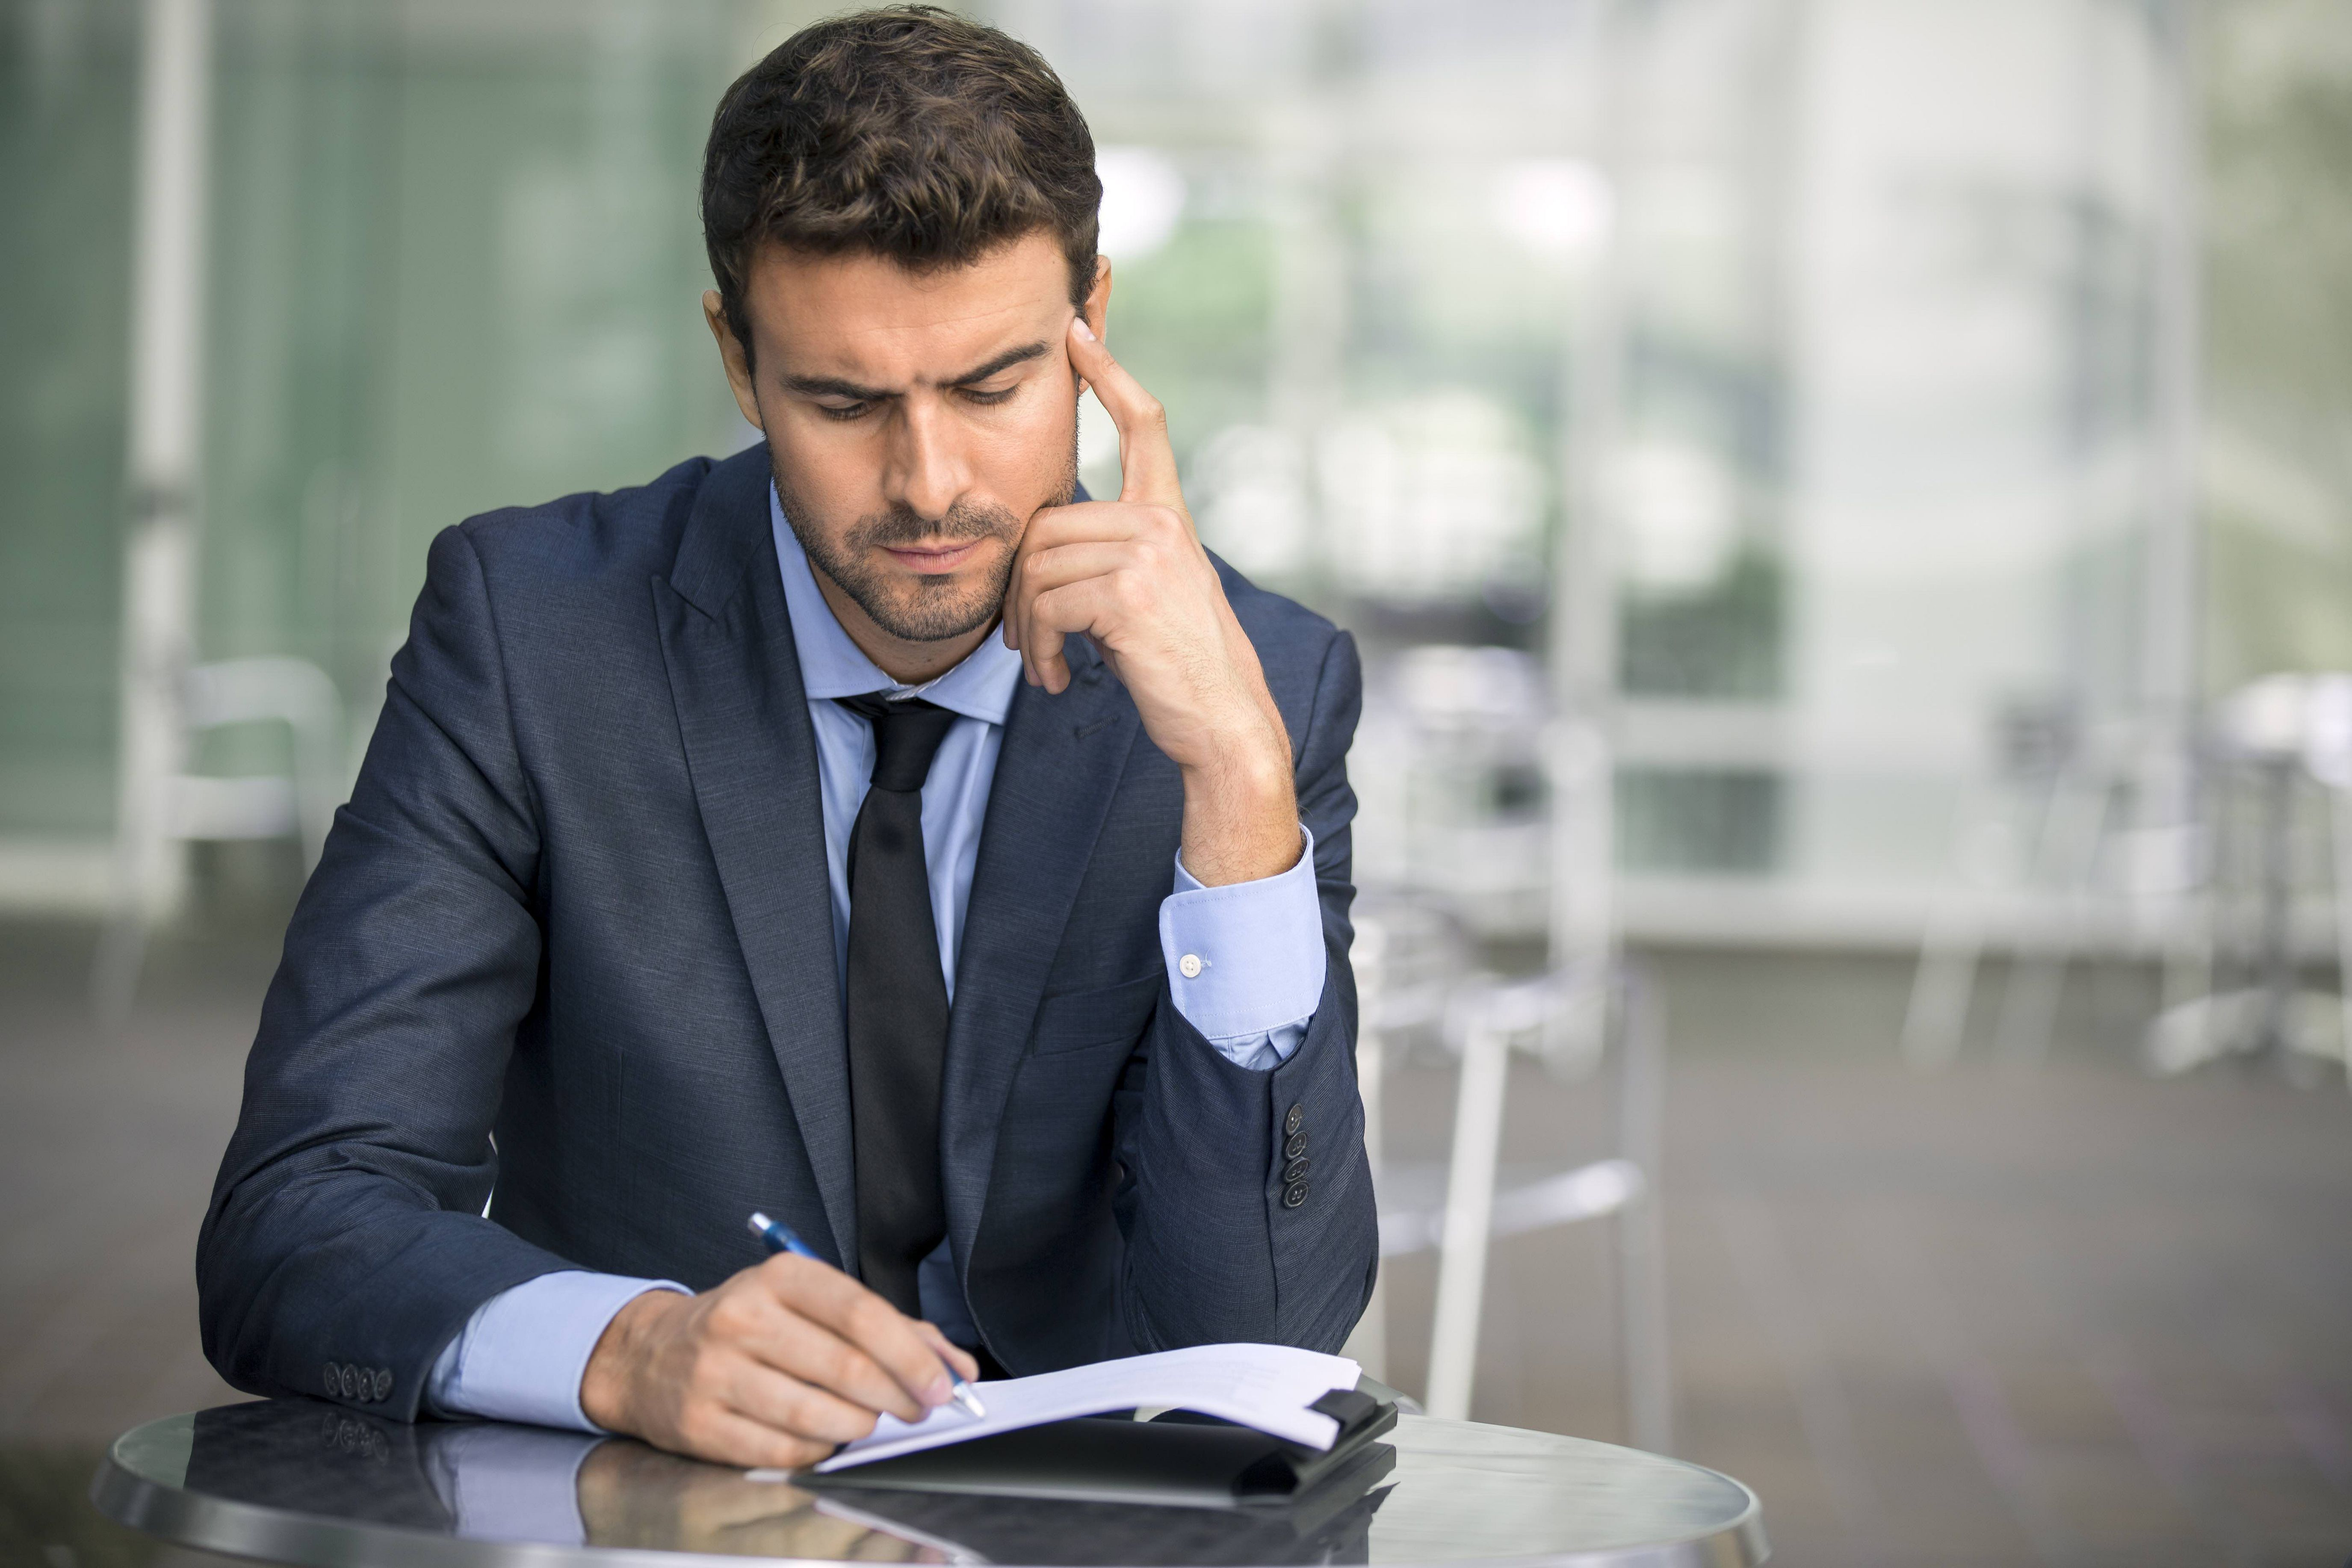 Focused Businessman Thinking And Writing Outside Office